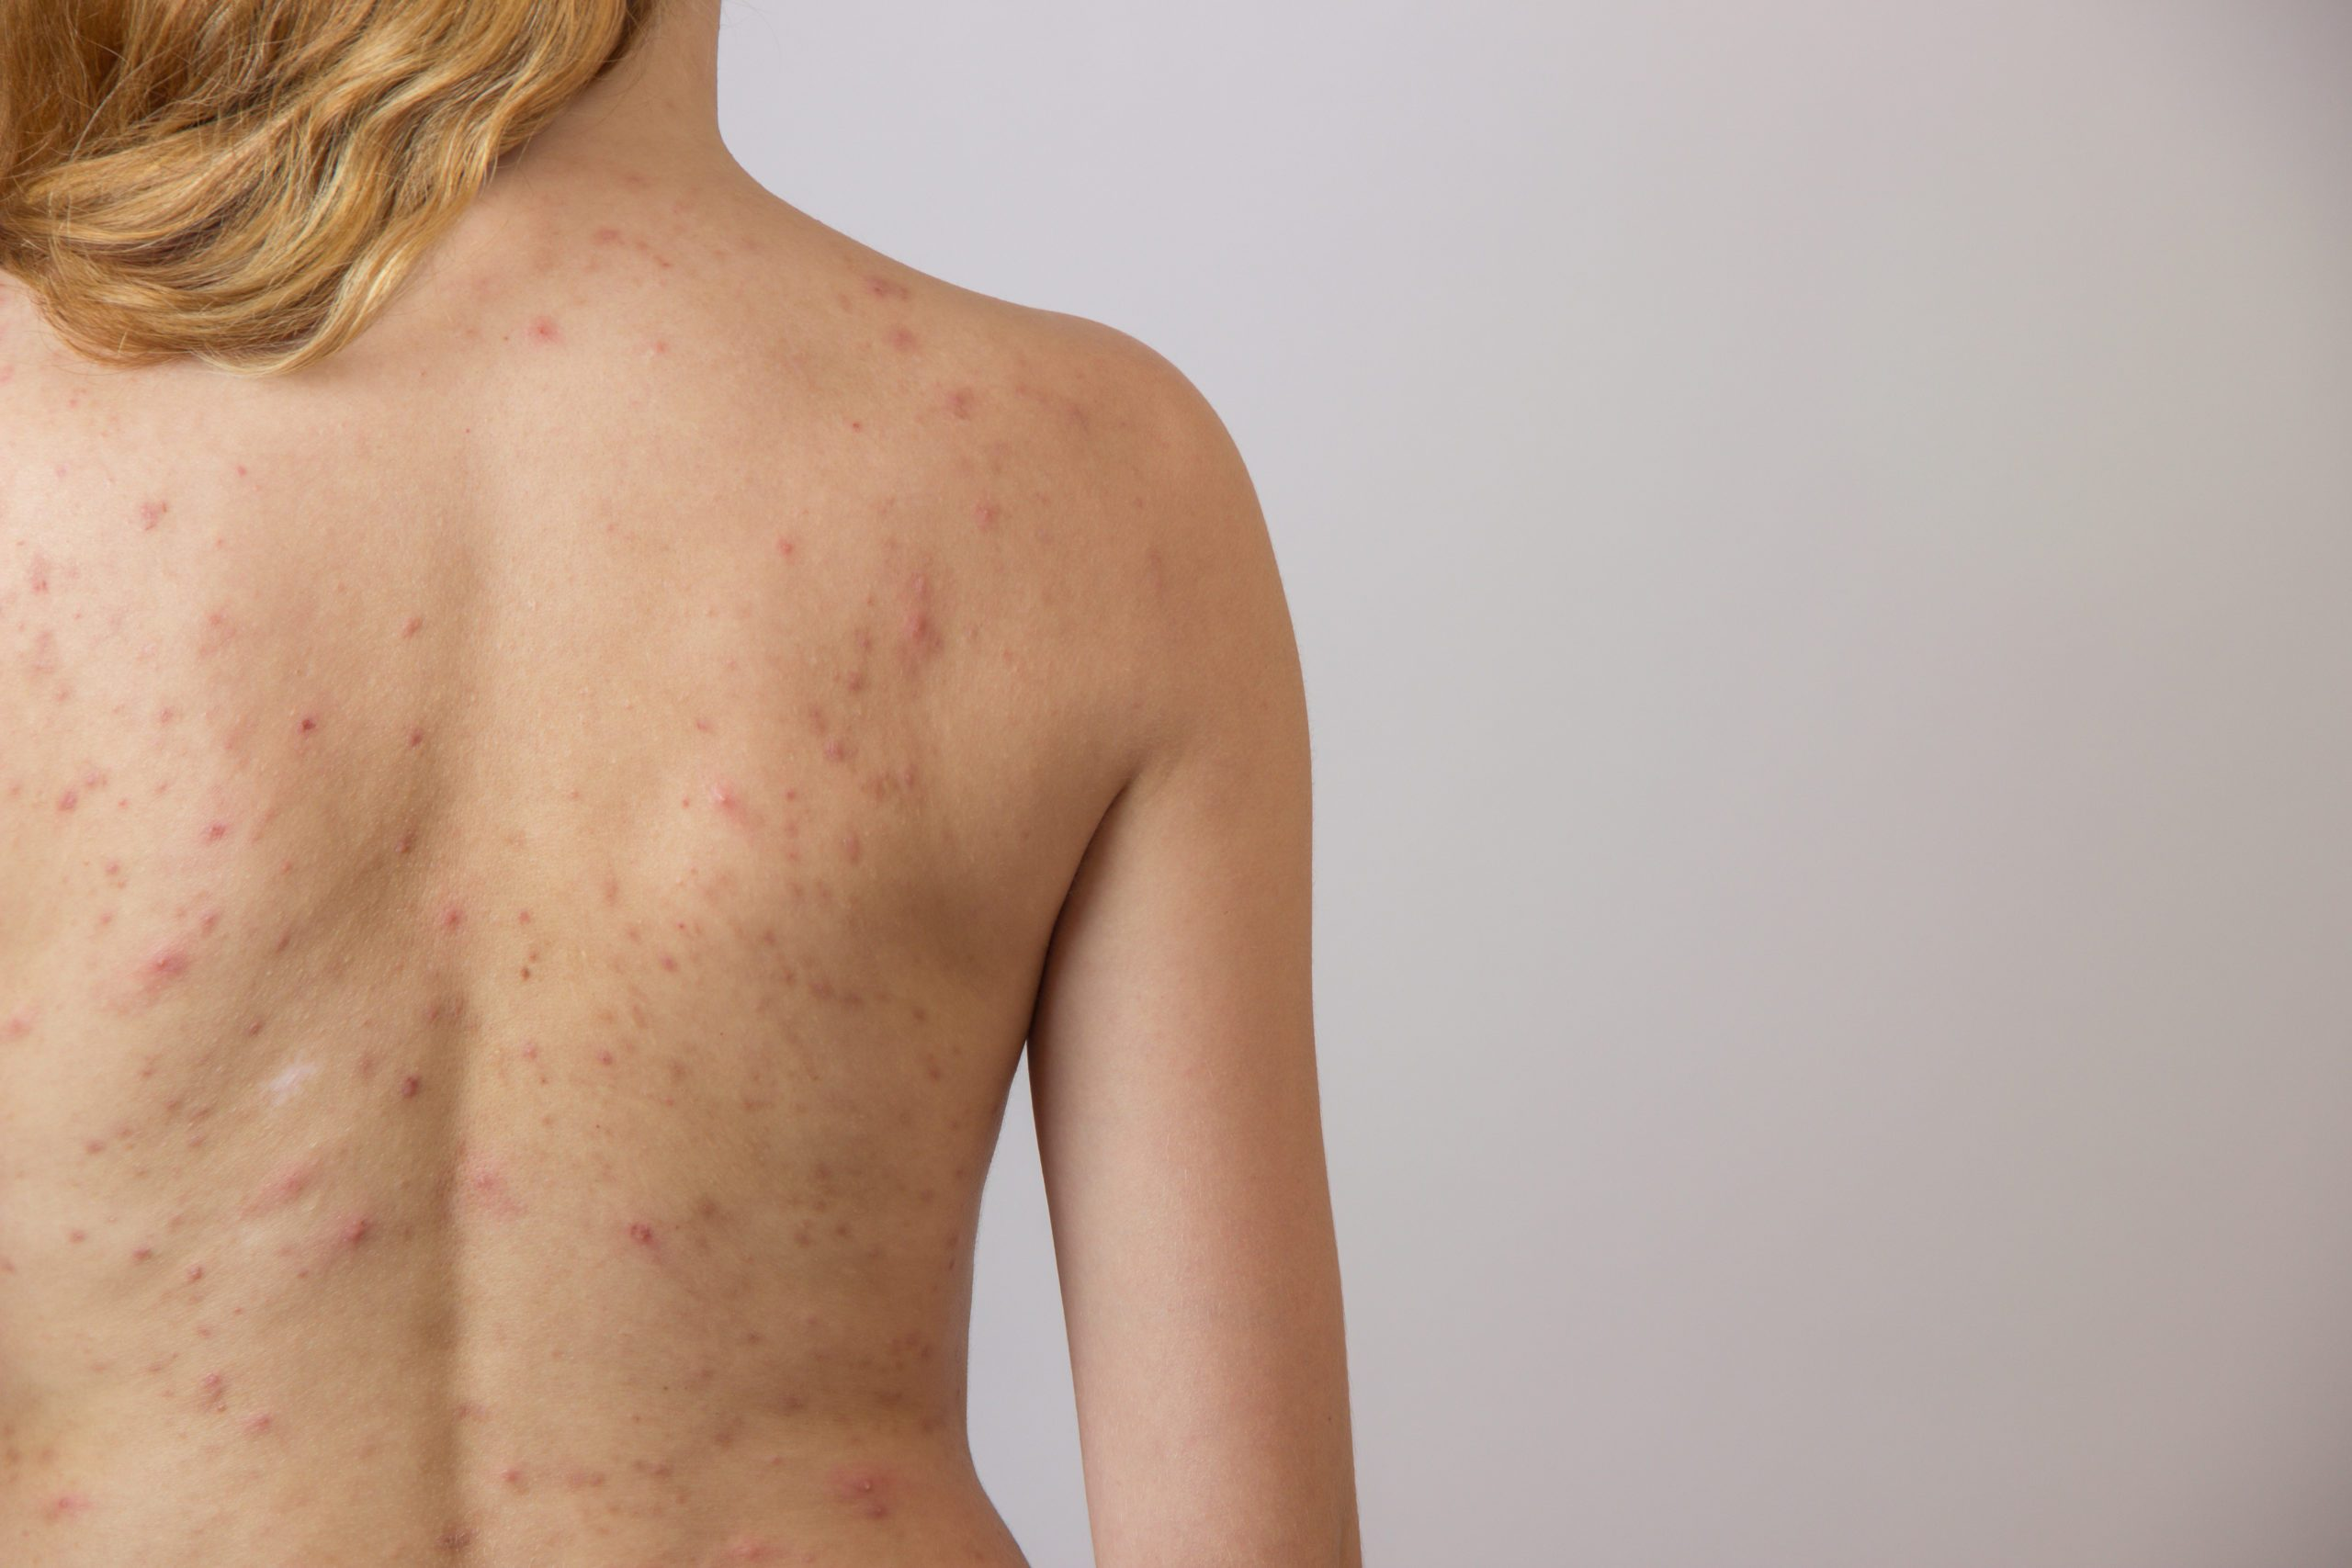 Body Acne: What is it and How to Treat | Best Health Magazine